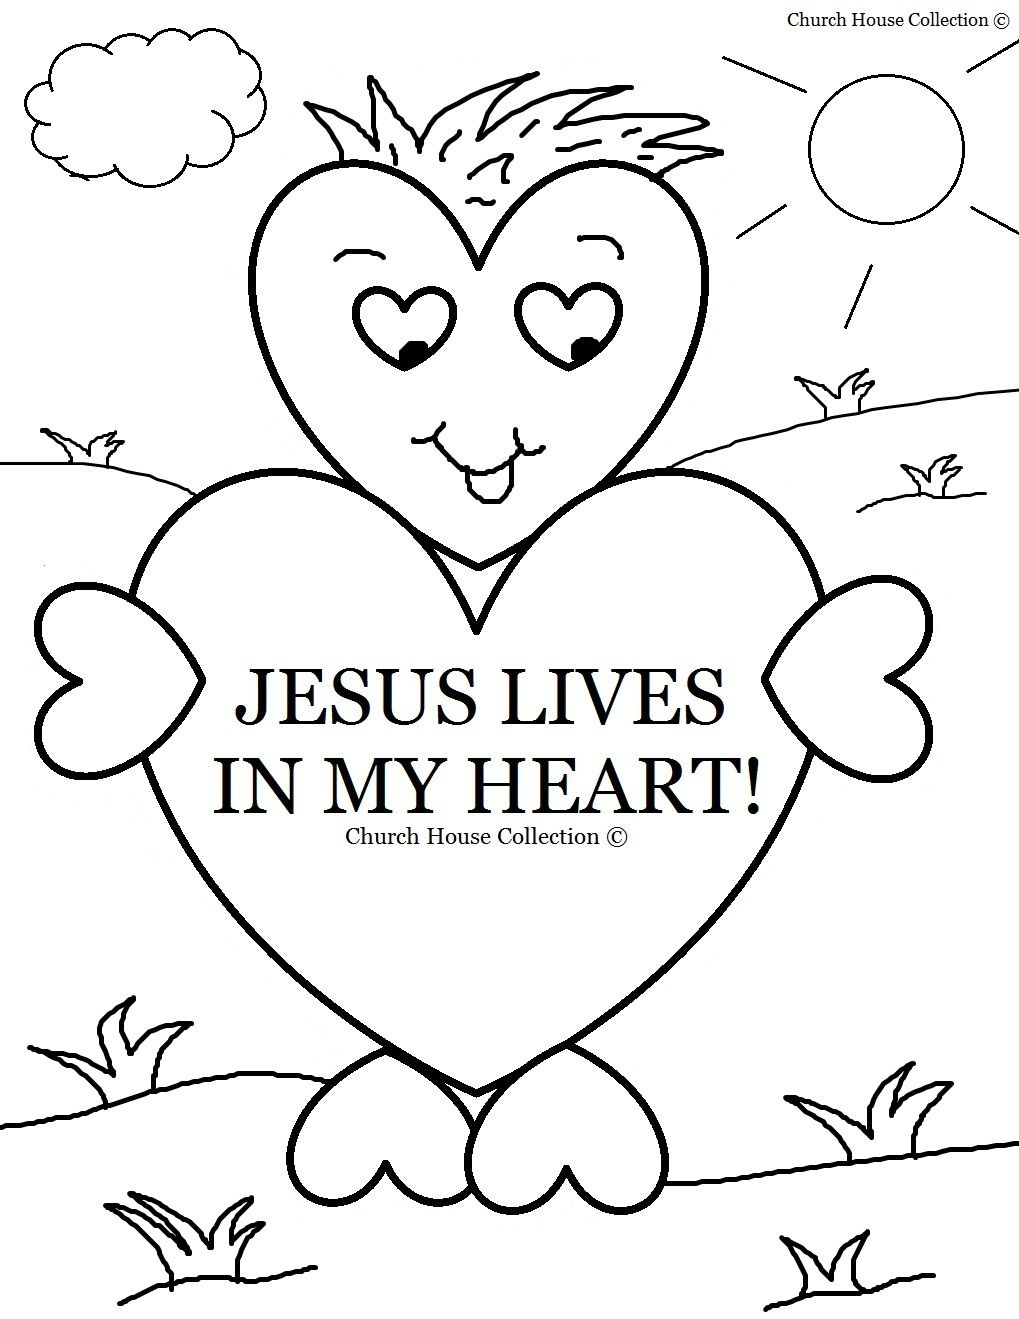 Mothers day coloring sheets for sunday school - Sunday School Coloring Pages Lives In My Heart Coloring Page For Sunday